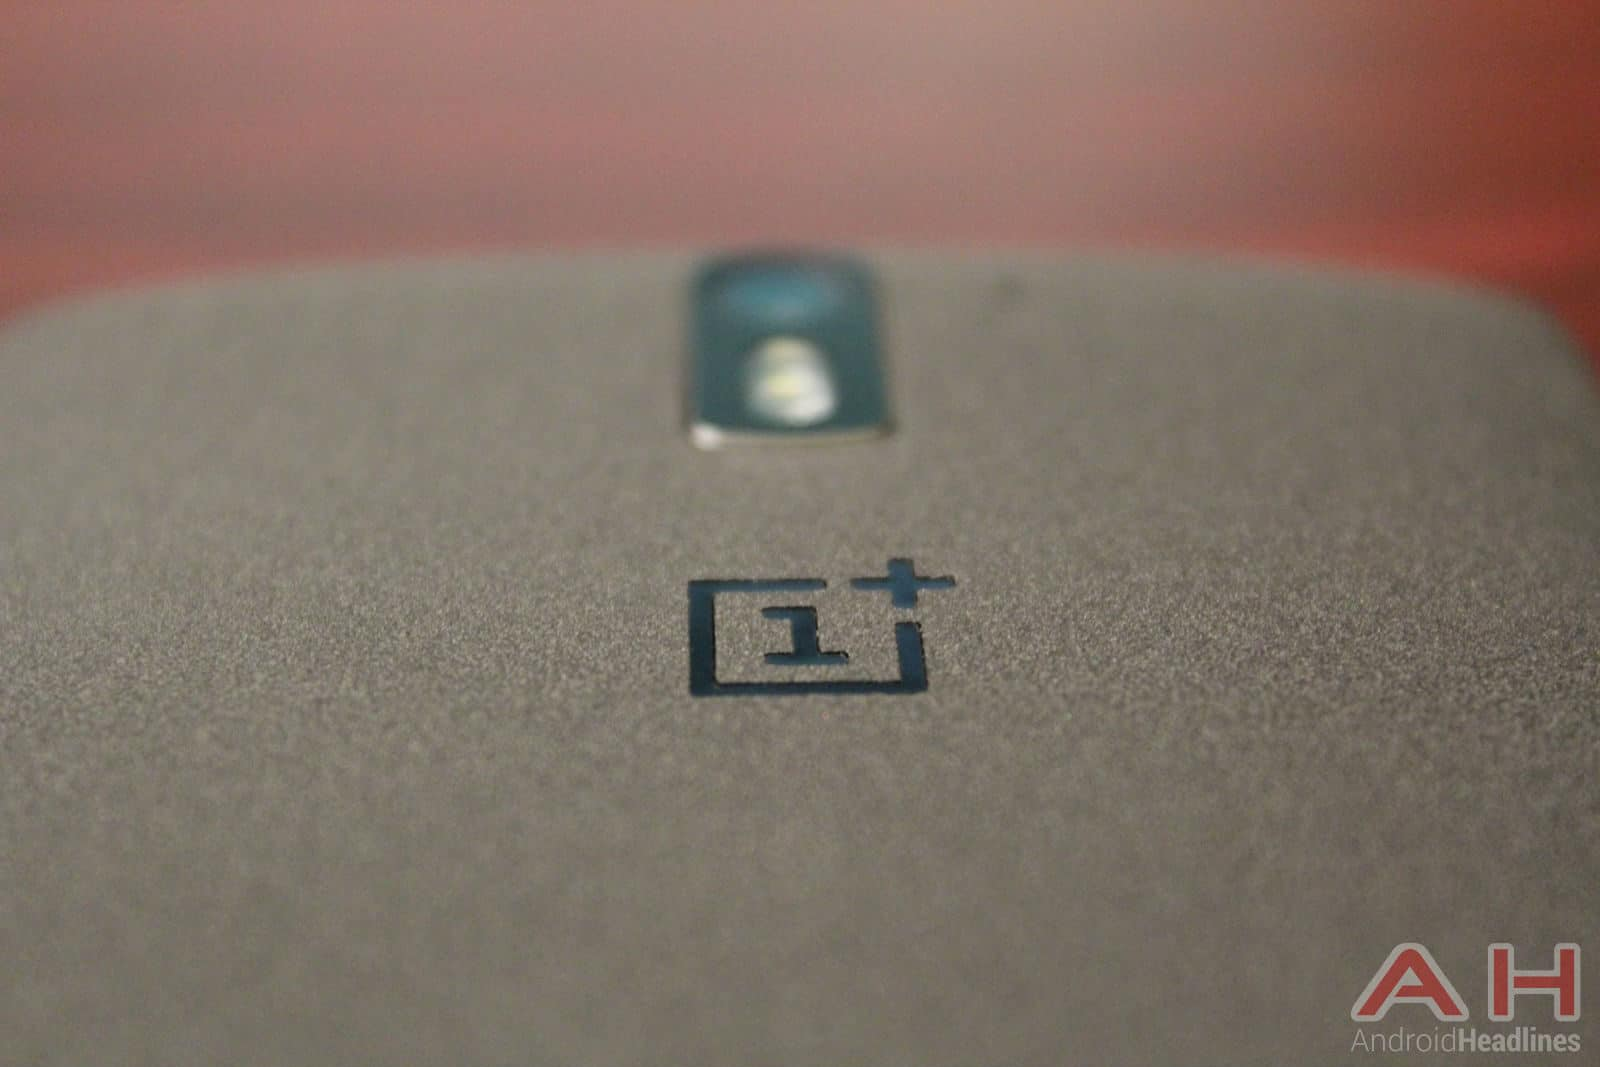 OnePlus-One-logo-camera